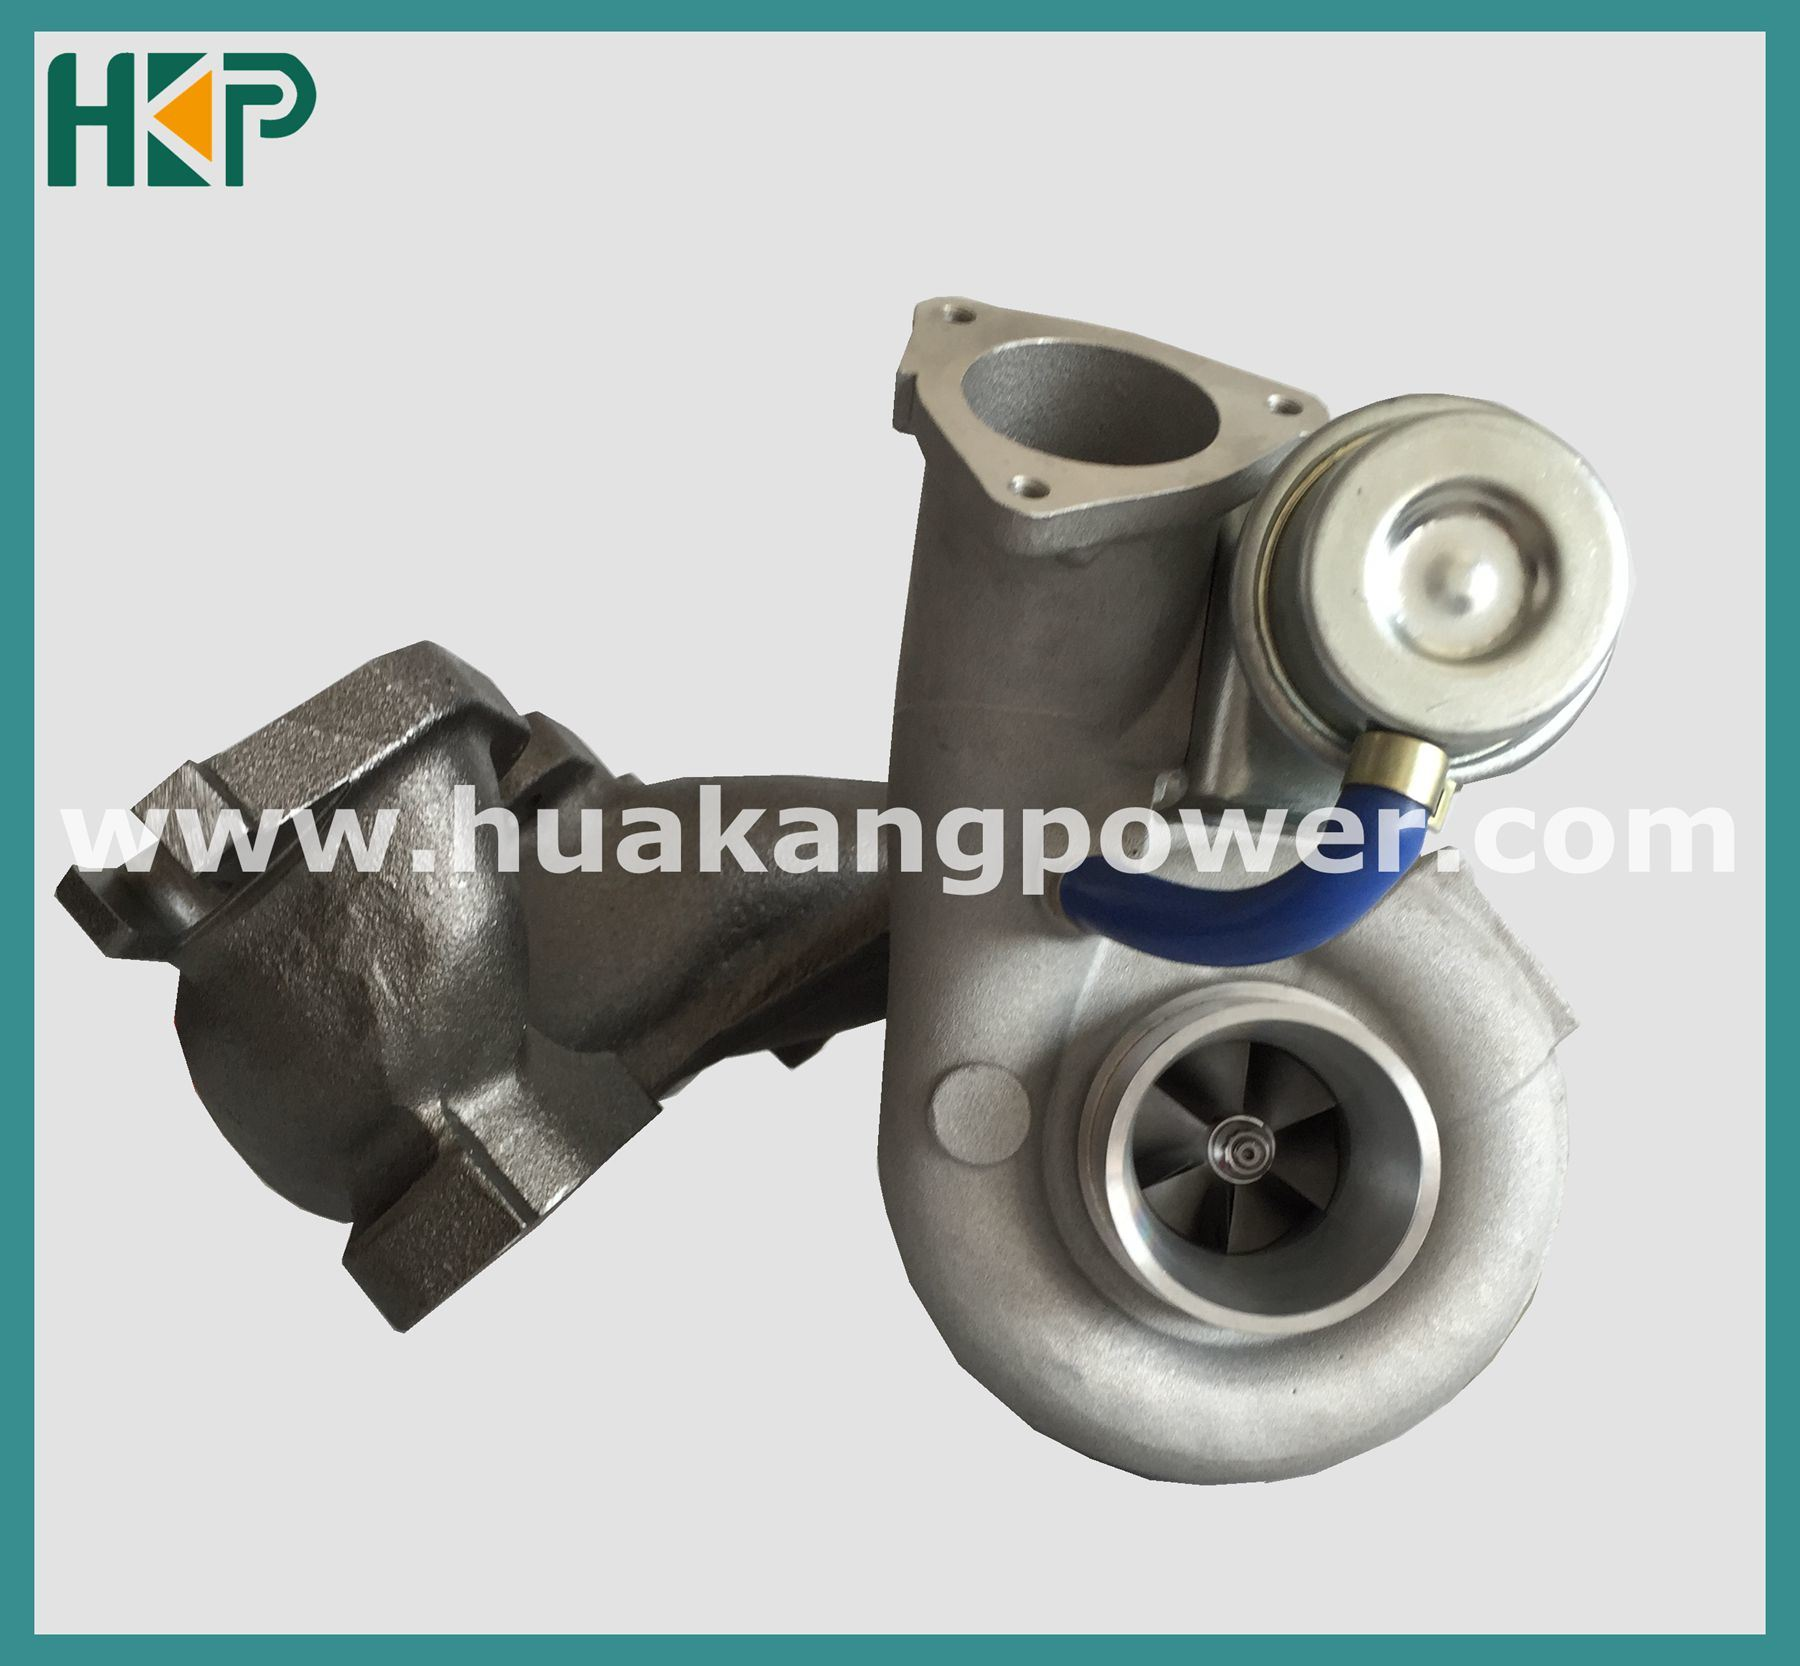 Turbo/ Turbocharger for Gt2256ms 704136-5003s OEM8973267520